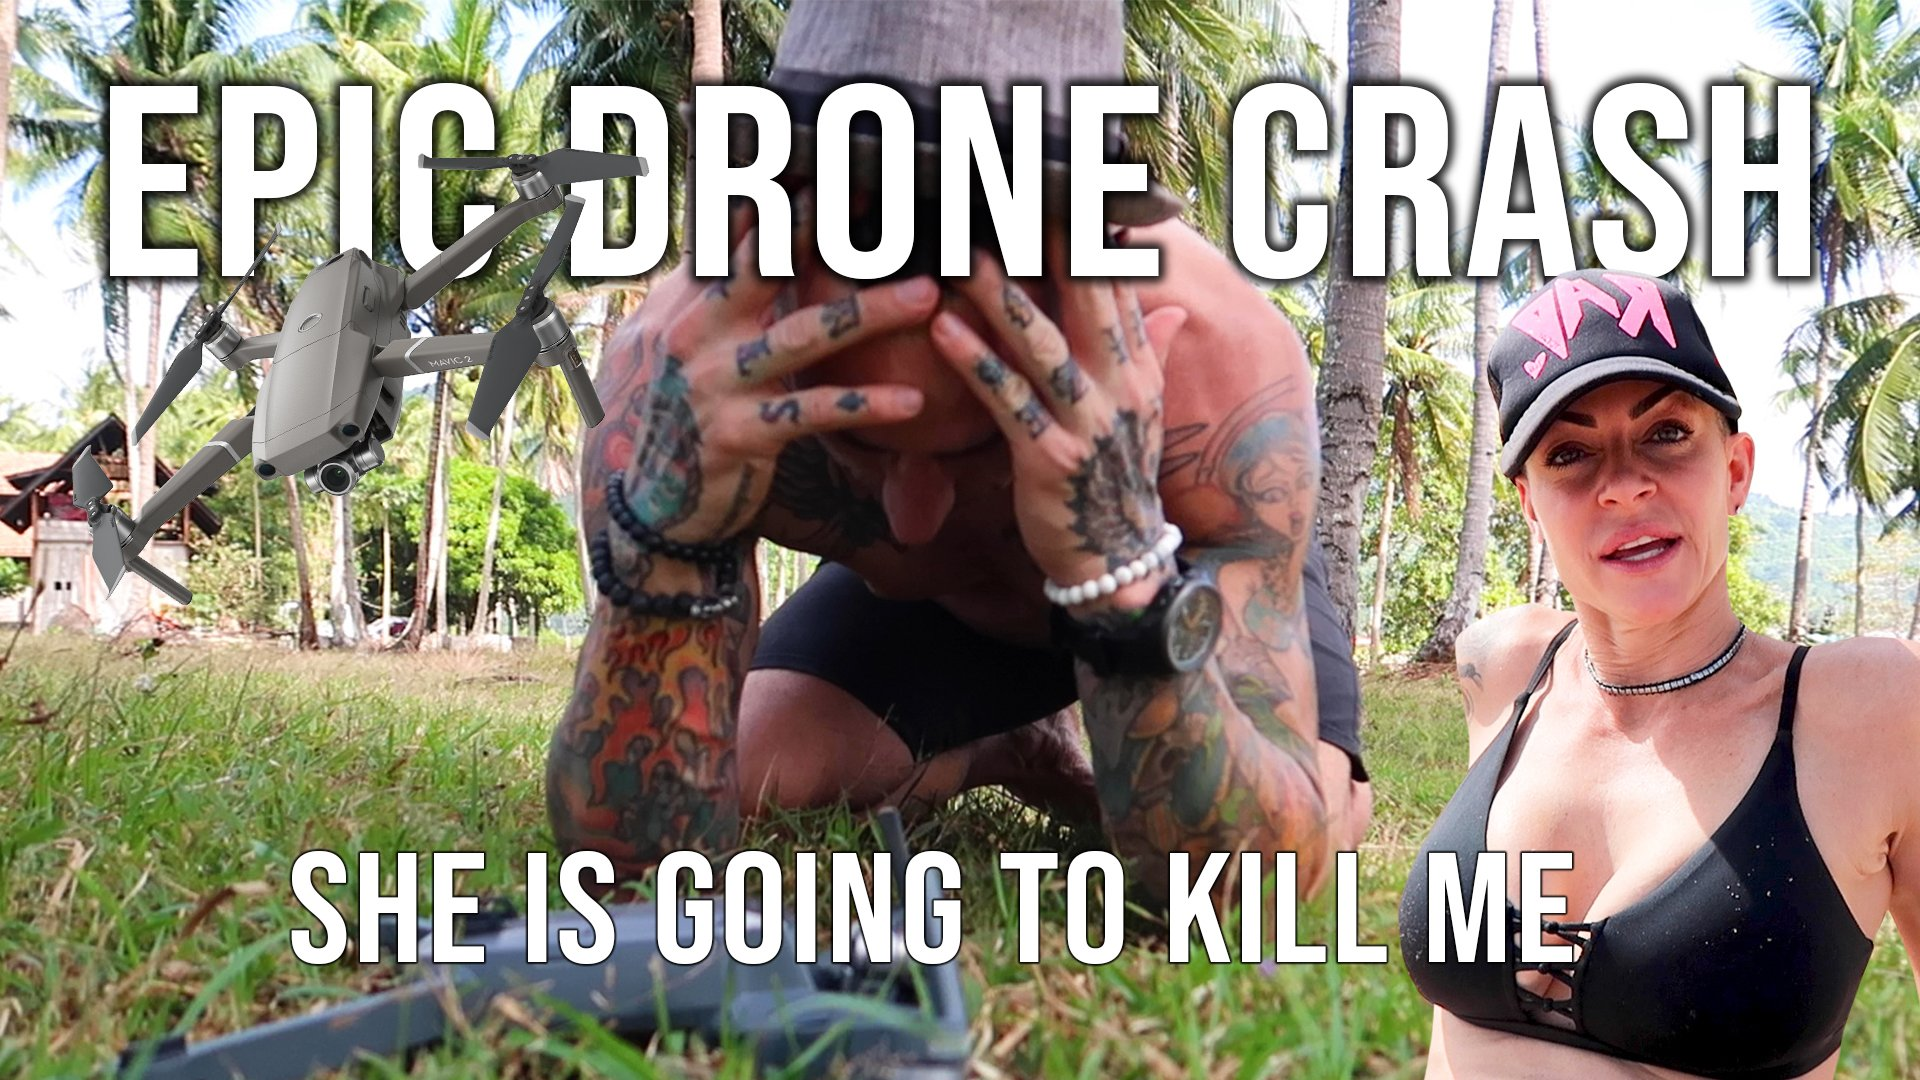 Oh No! I Crashed the Drone :(